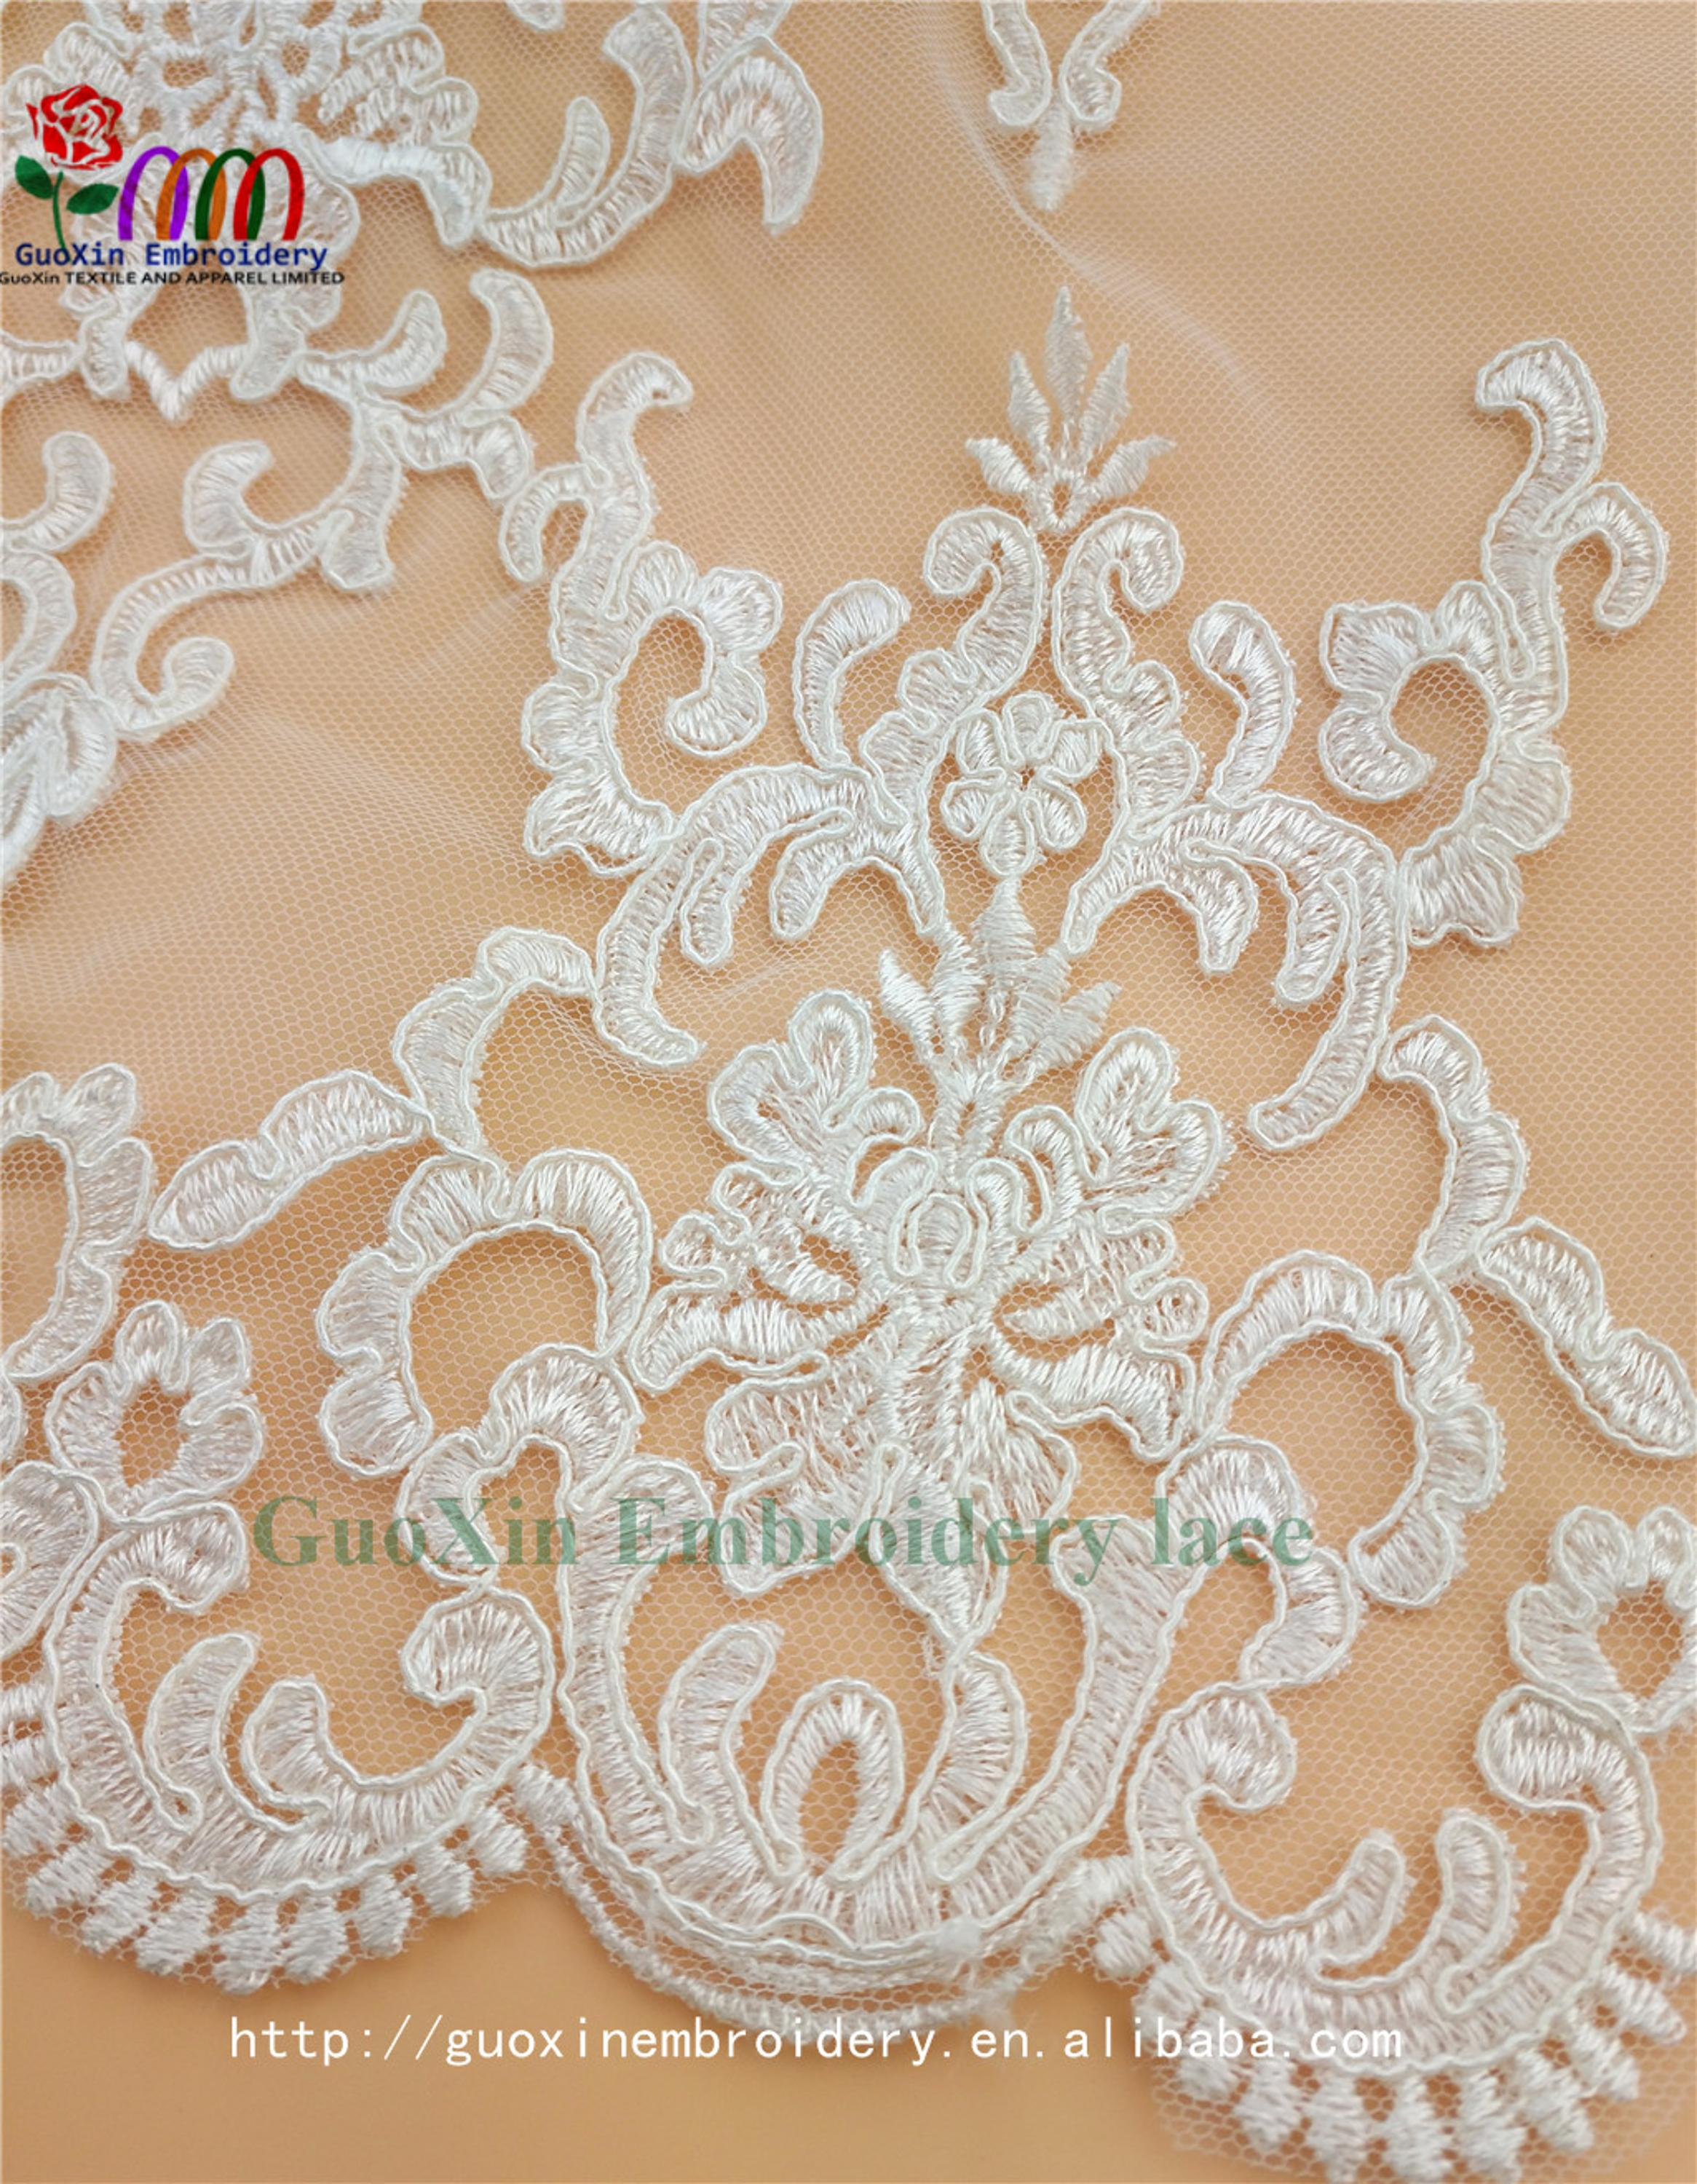 embroidery tulle manufacture wholesale wedding veil ivory lace fabric with cording (6).jpg